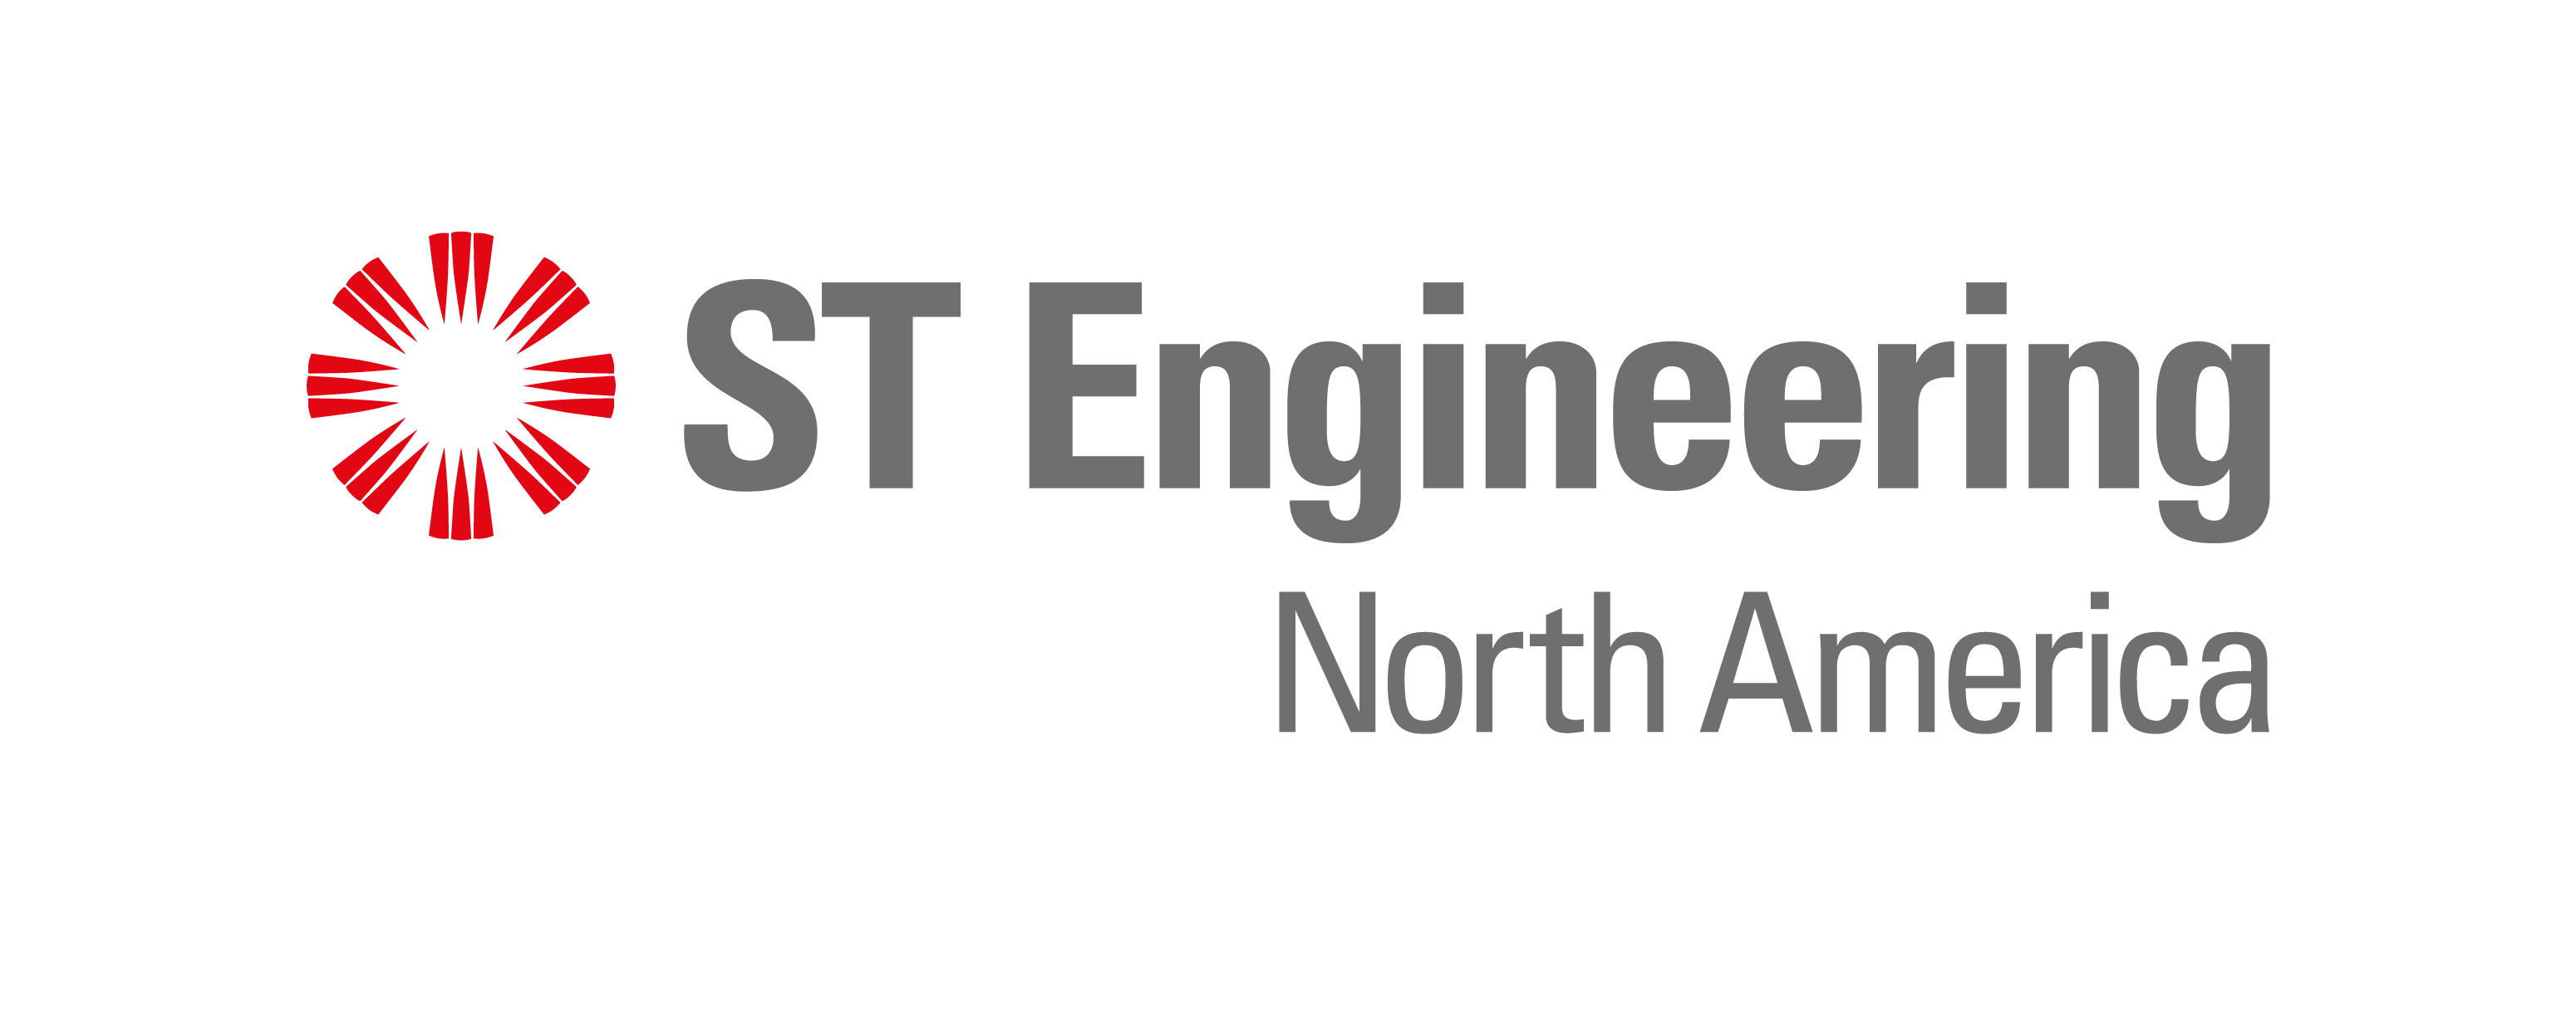 ST Engineering North America, Inc.